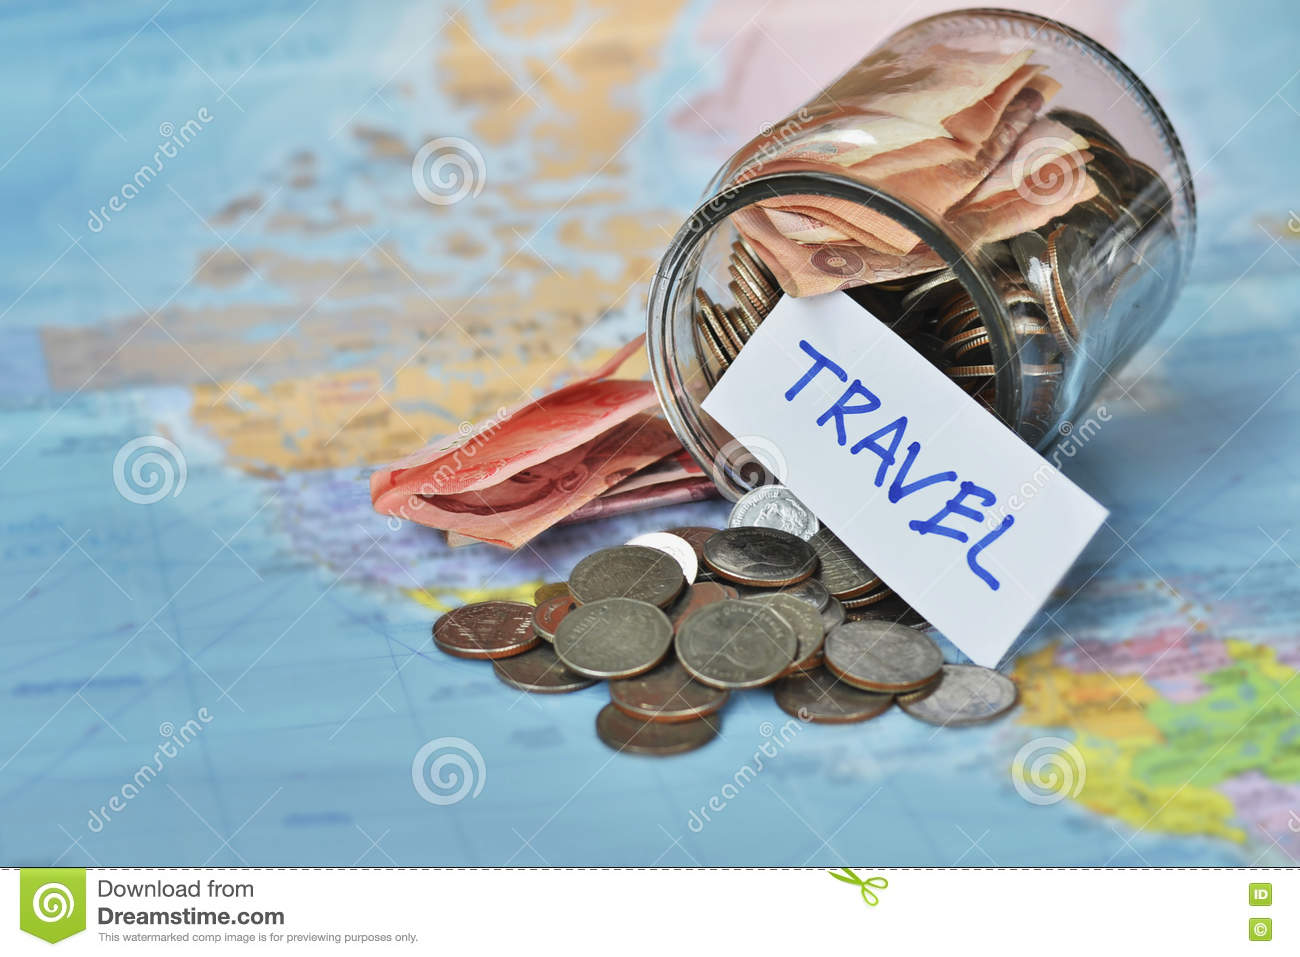 travel-budget-concept-travel-money-savings-glass-jar-map-78676459.jpg